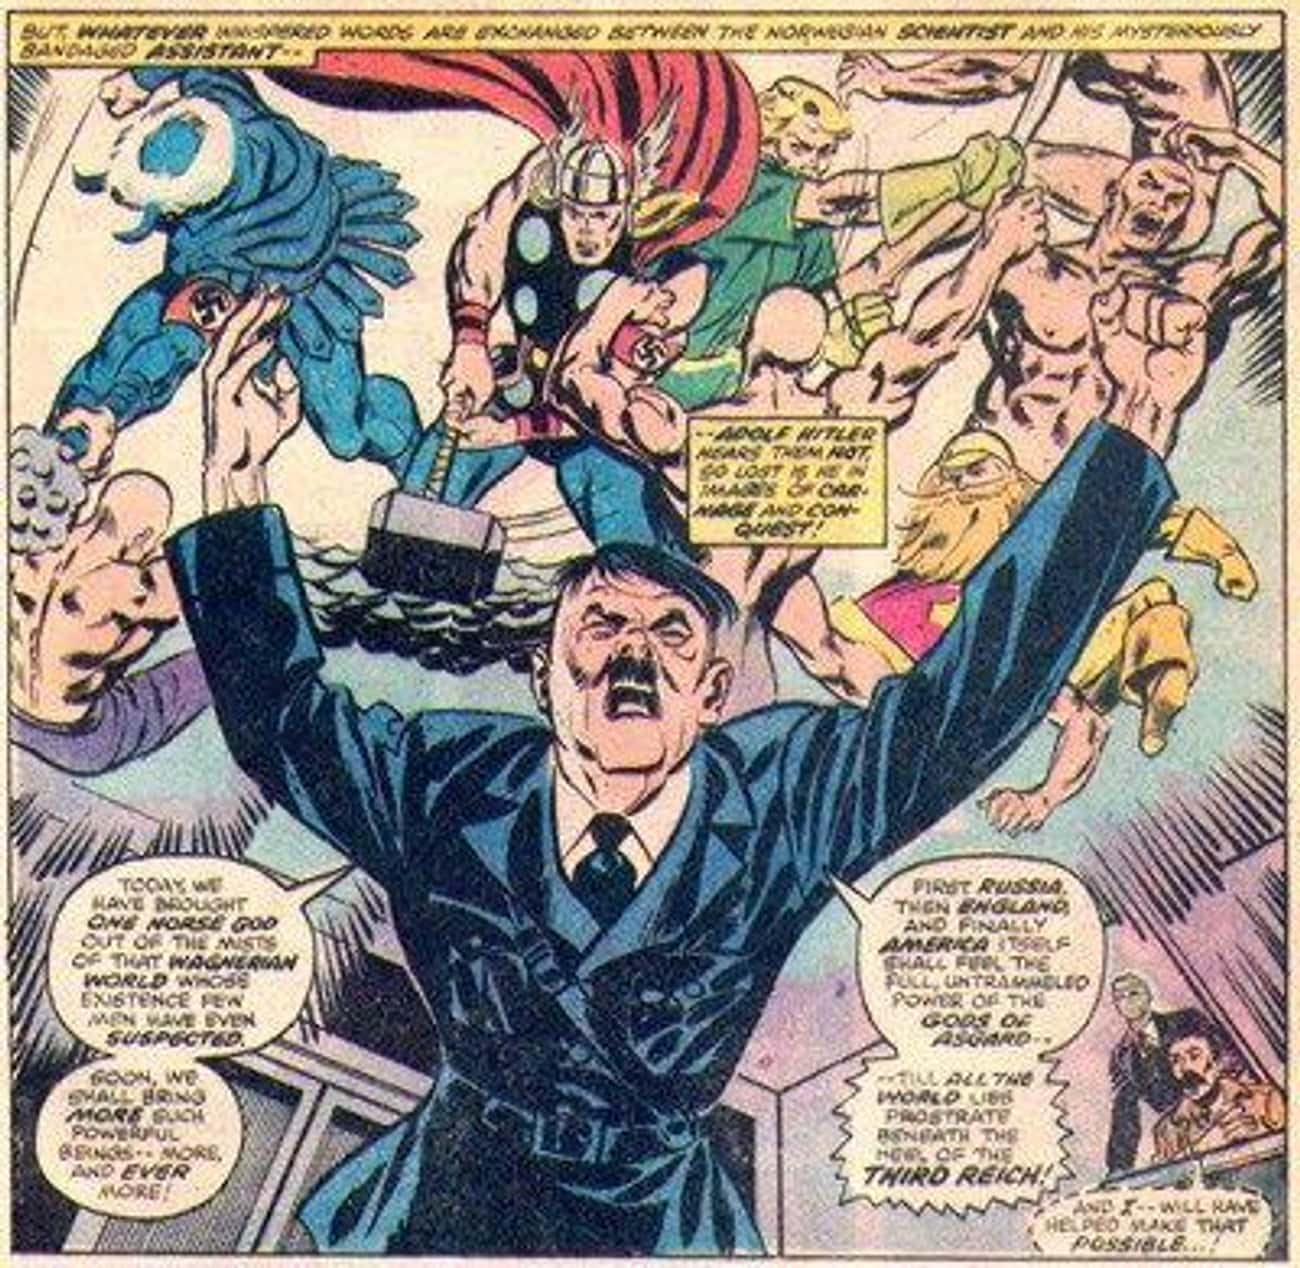 He Teamed Up With Hitler is listed (or ranked) 4 on the list The Most Messed Up Things Thor Has Ever Done In The Comics